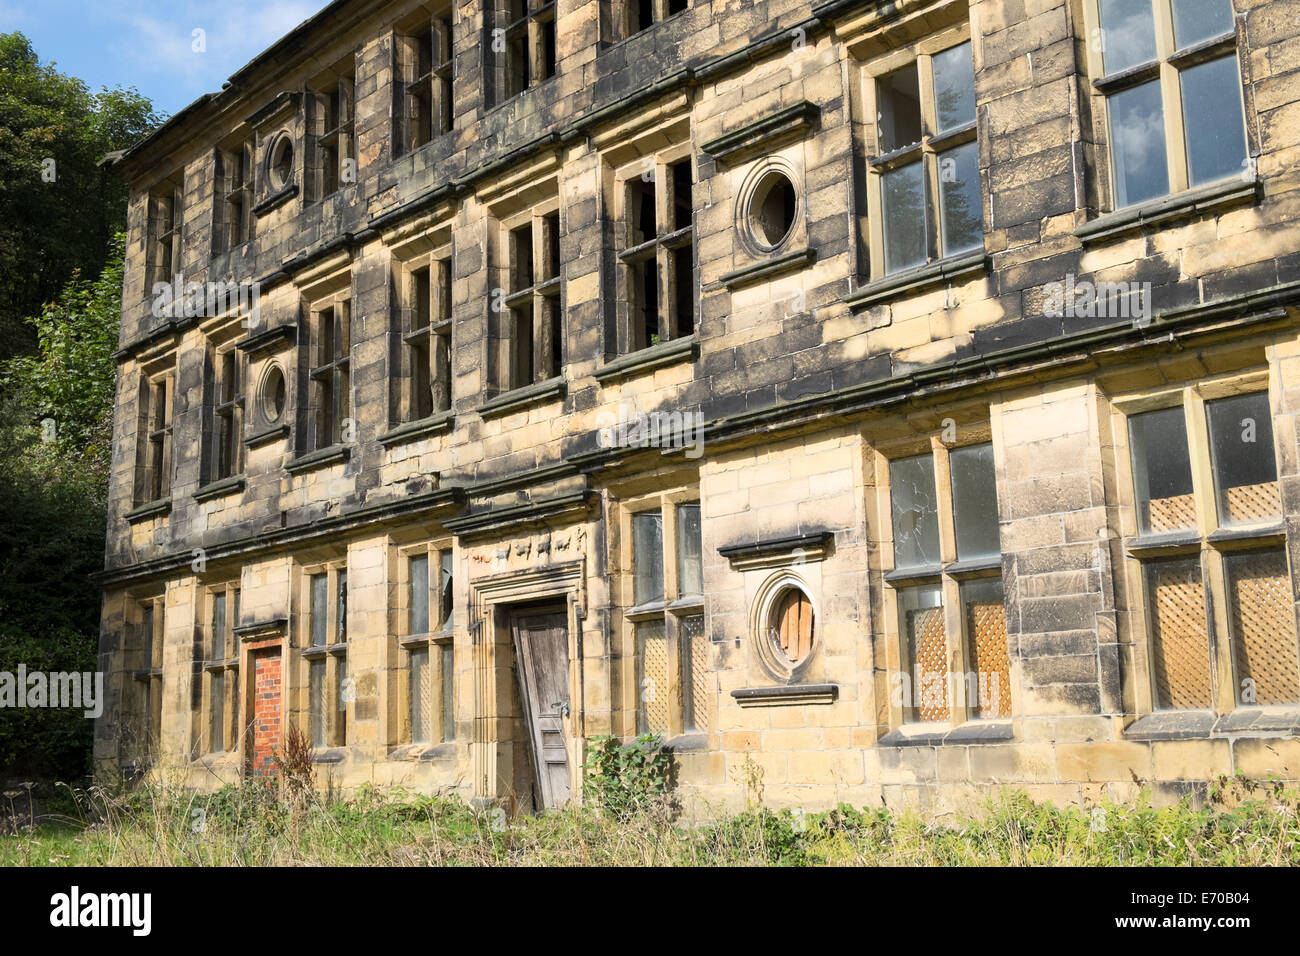 17th century Scout Hall, now derelict, Shibden, West Yorkshire - Stock Image